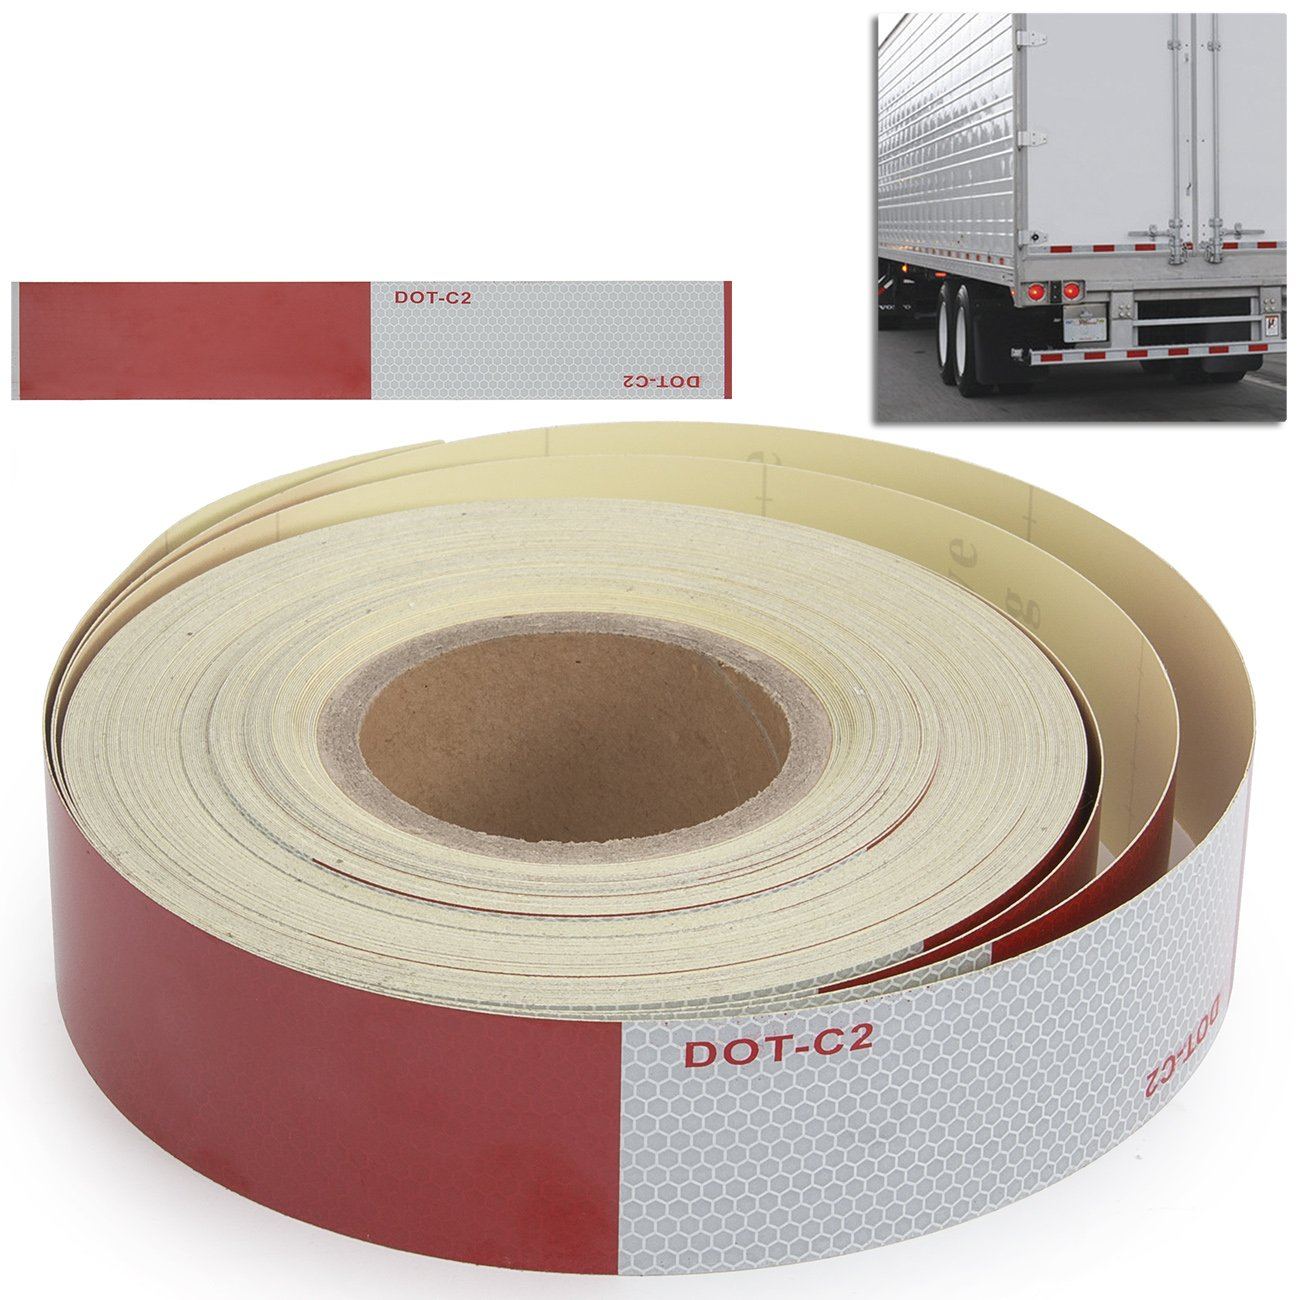 Amazon ARKSEN 2 X 150 DOT Class Reflective Tape Safety Red White Adhesive Set Truck RV Outdoor Home Improvement